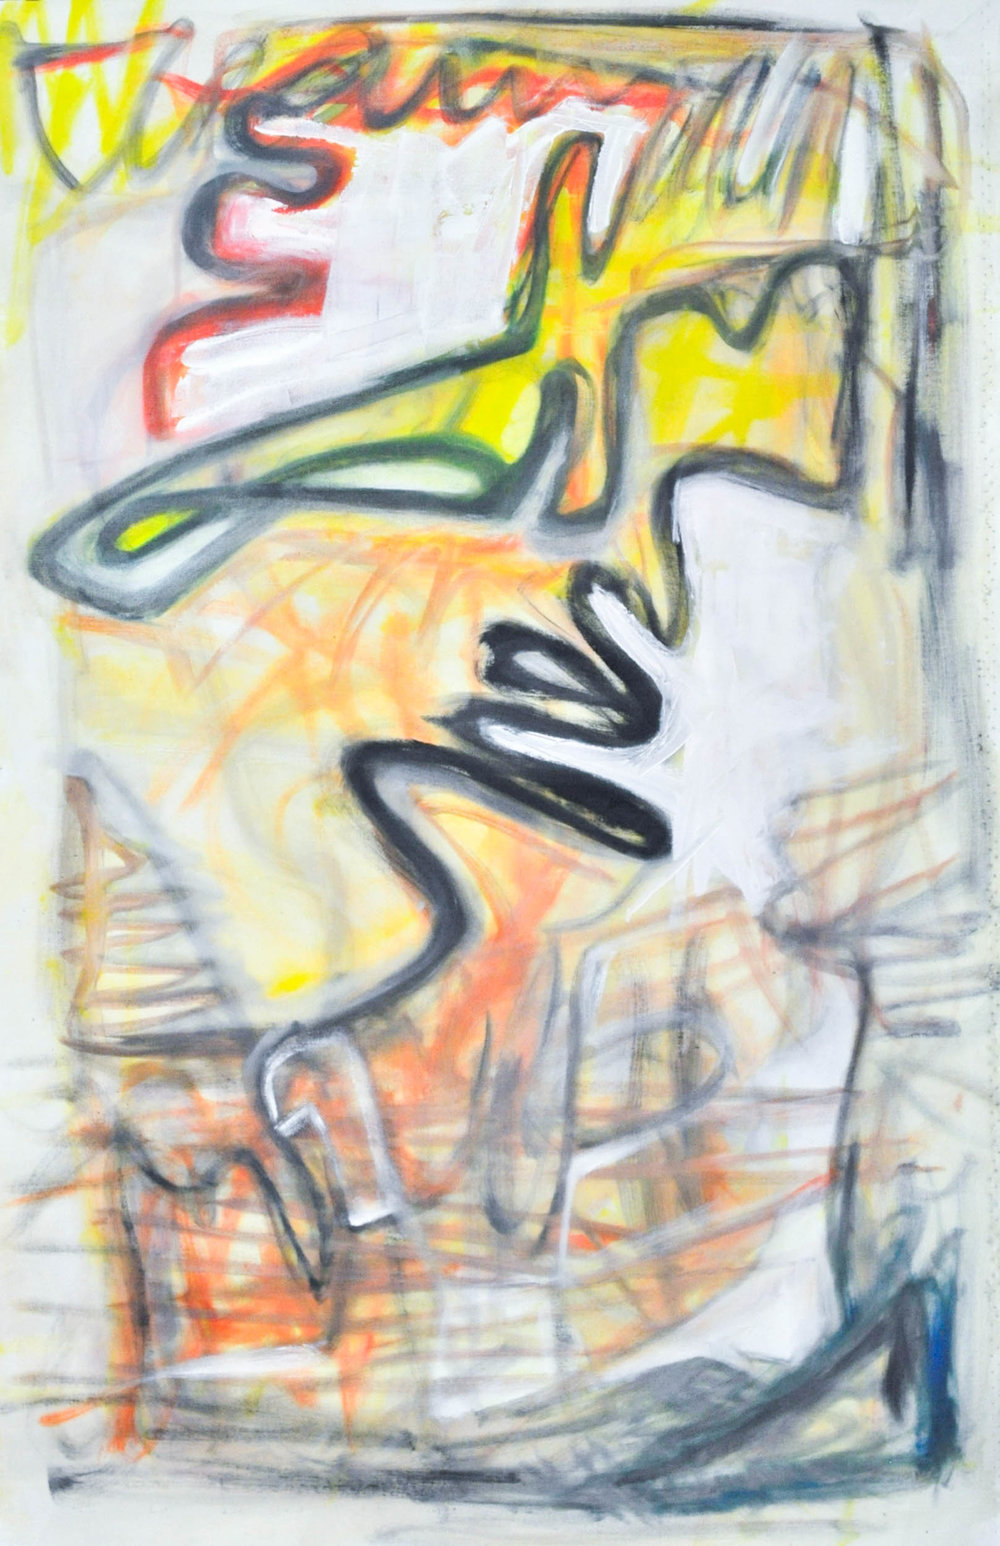 Birds of Paradise2  Oil on canvas.  42.75 X 27.75 unstretched. OR  Gallery wrap approx. 36 X 21 X 2 stretched on wood bars.